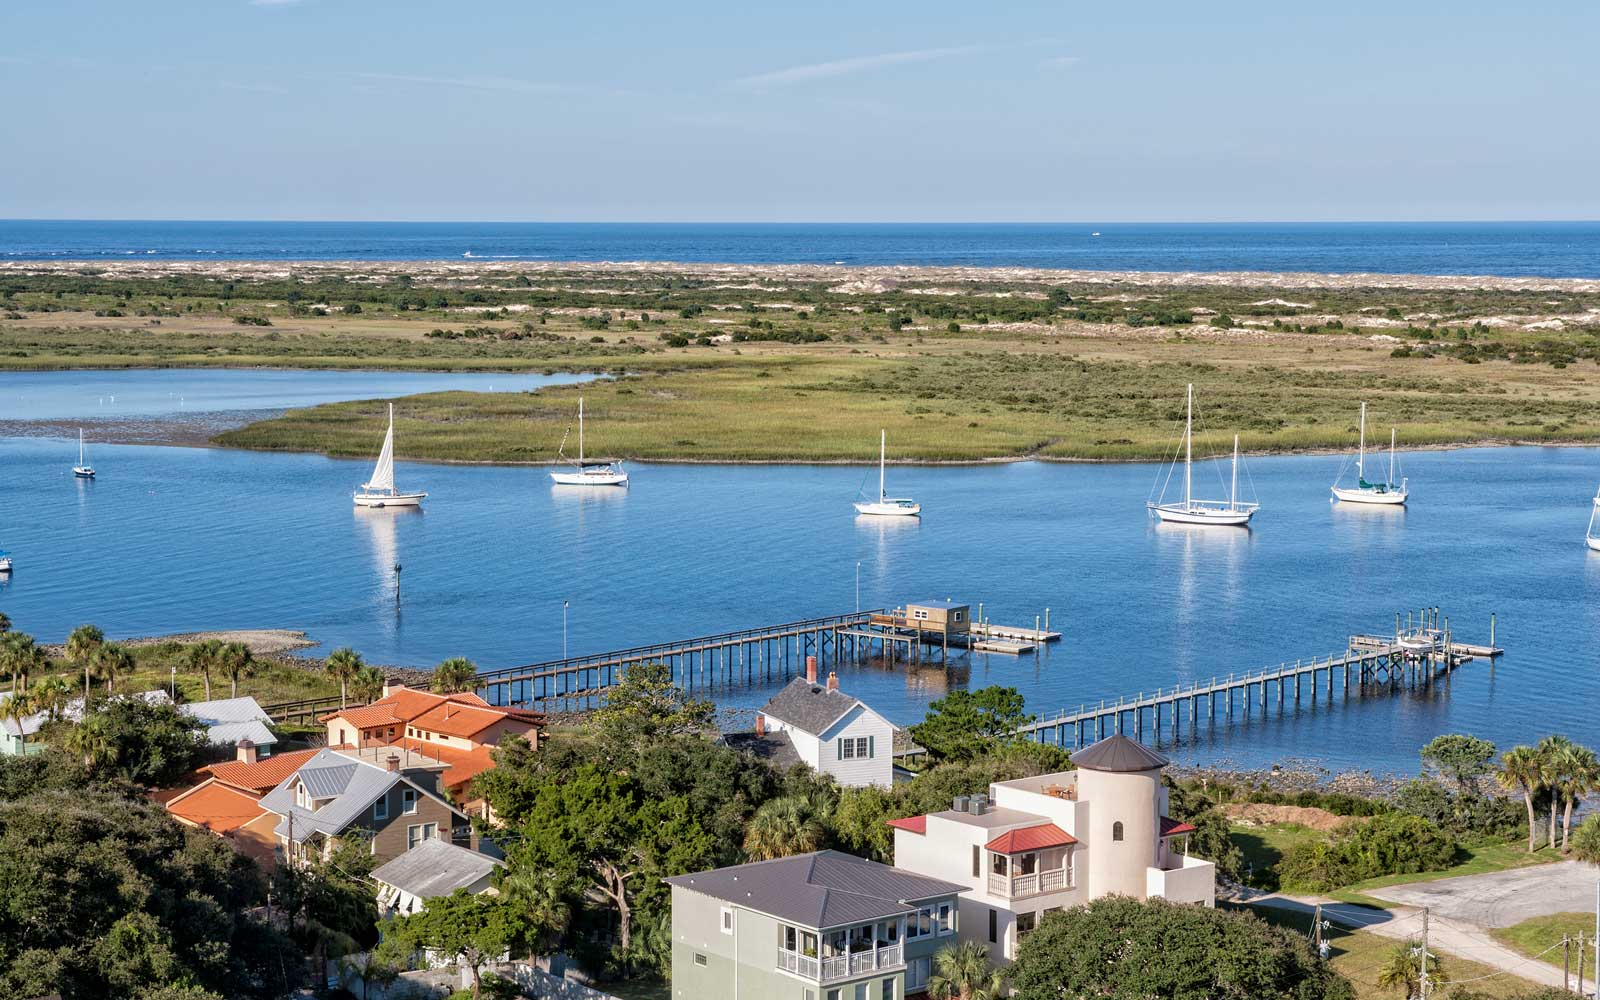 View from the top of St. Augustine's Lighthouse